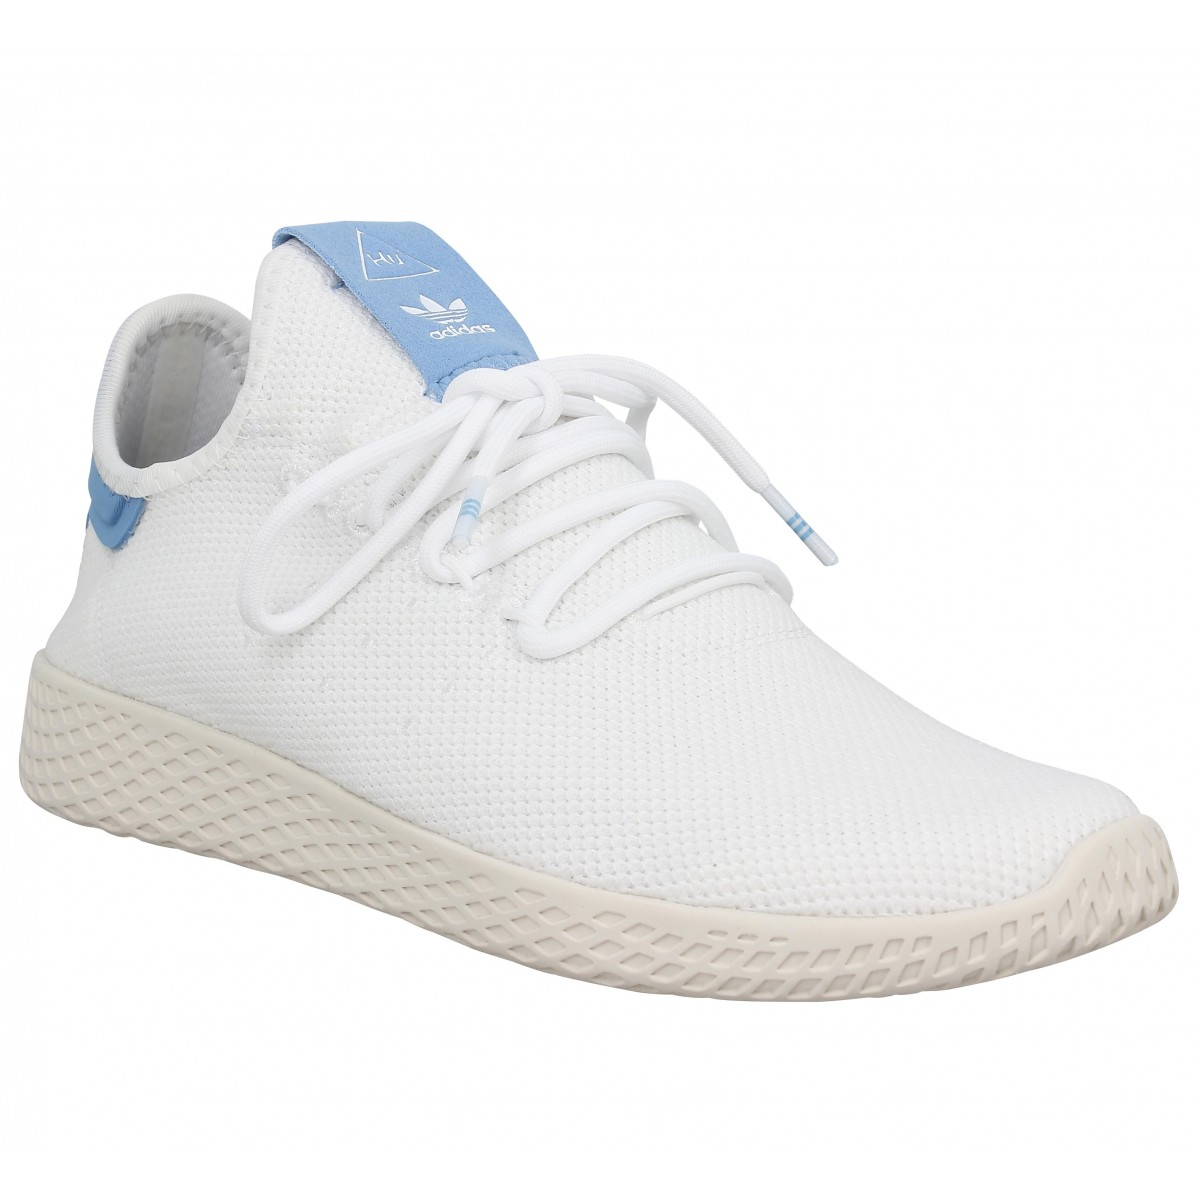 Baskets ADIDAS X PHARRELL WILLIAMS PW Tennis mesh Blanc Bleu